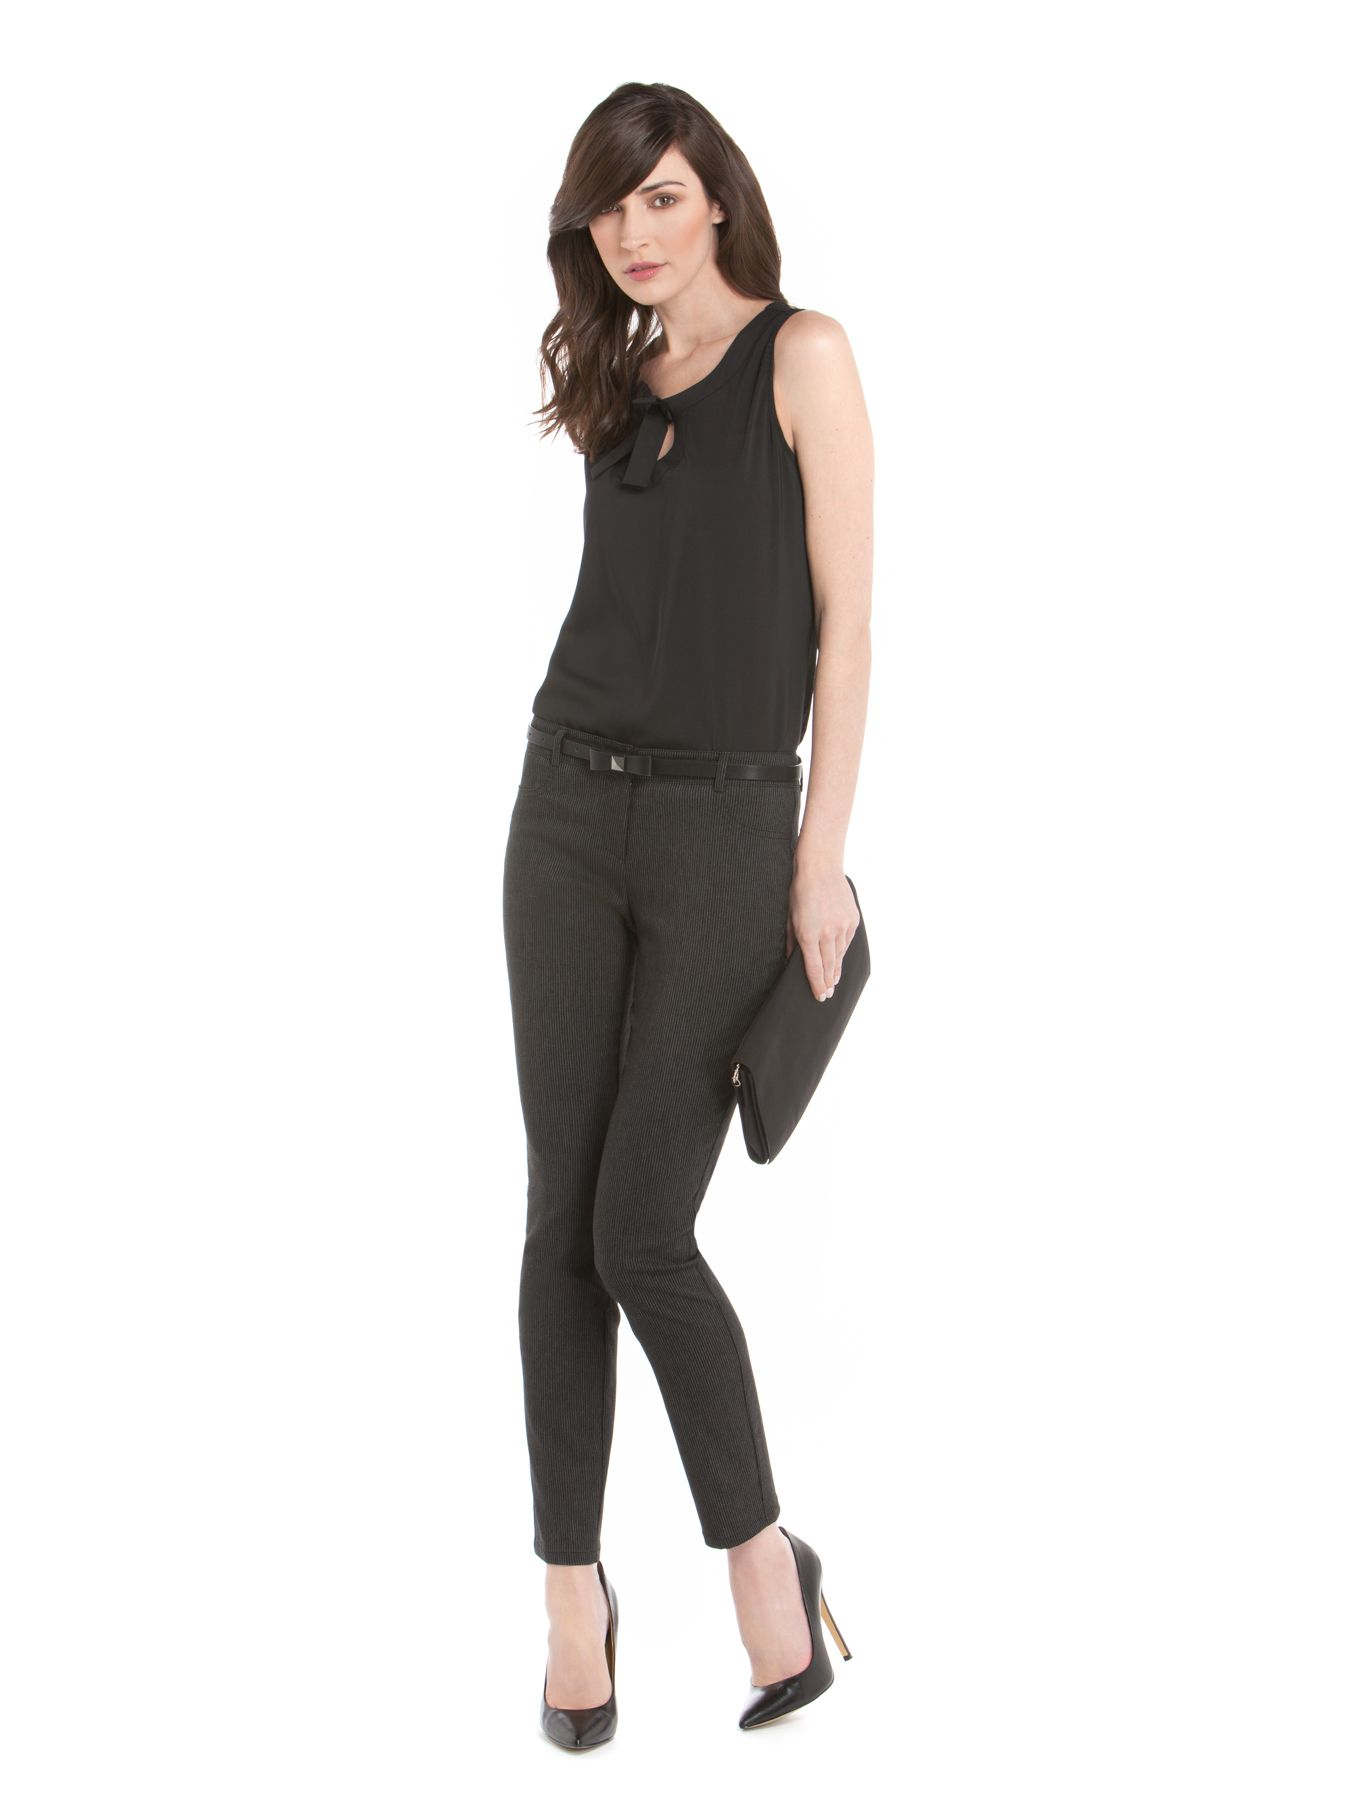 Pantalon tout-aller rayé deux tons 100 % fabriquée au Canada - Casual two-tone striped trousers 100% made in Canada